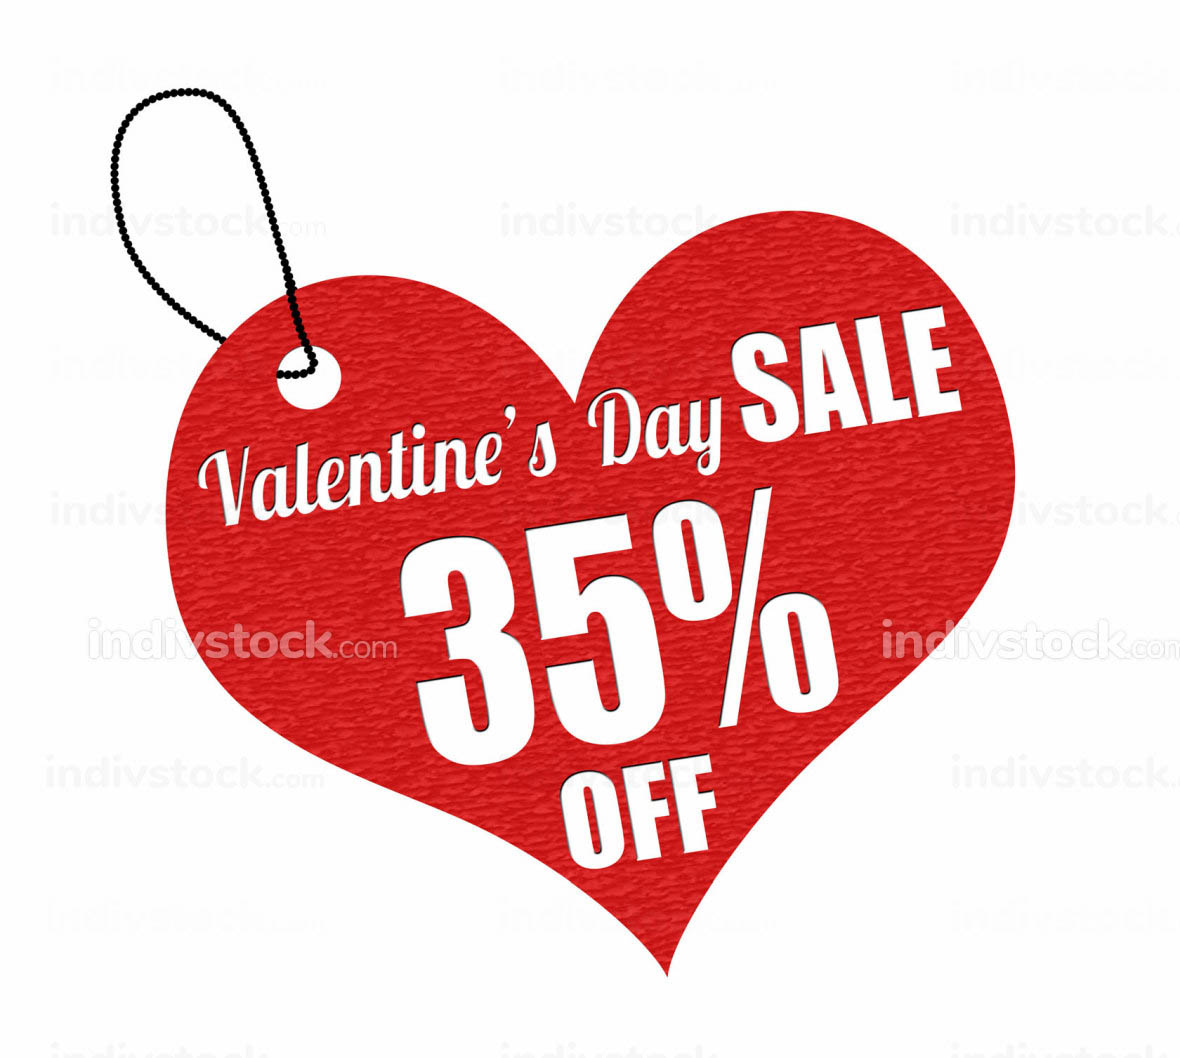 Valentines sale 35 percent off label or price tag